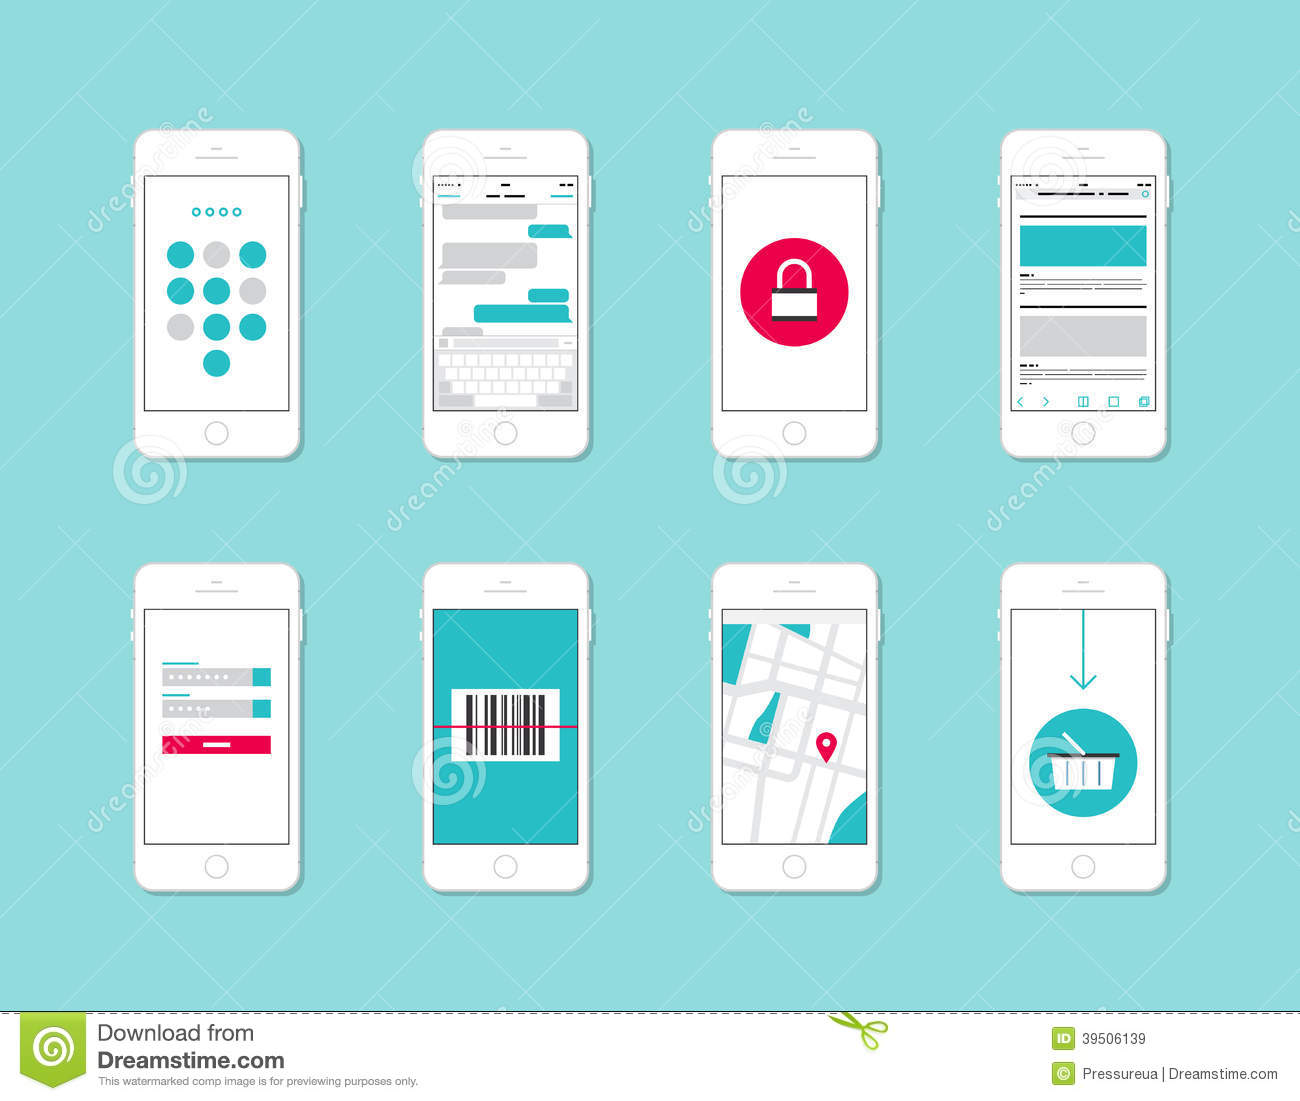 Home App Design: Smartphone Application Interface Elements Stock Vector